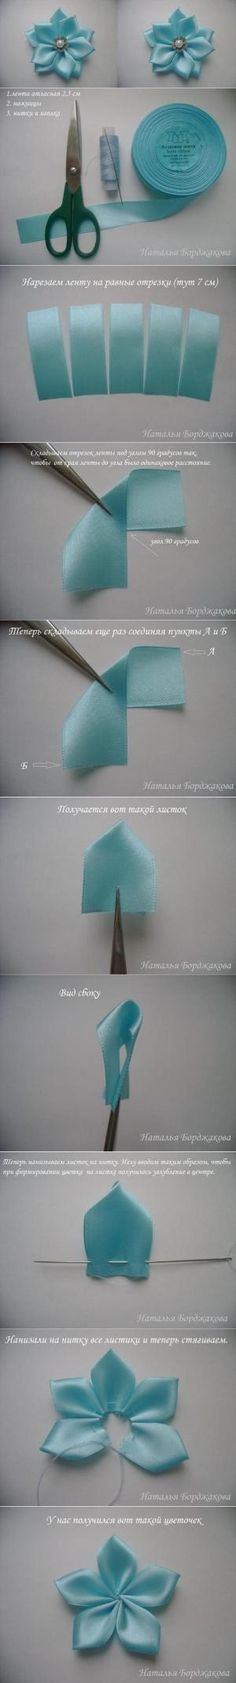 DIY Pointed Petals Ribbon Flower DIY Pointed Petals Ribbon Flower Okay, so I can't read Russian, but this is cool. I need to figure out these dimensions so I can recreate it! by lovelydesigns